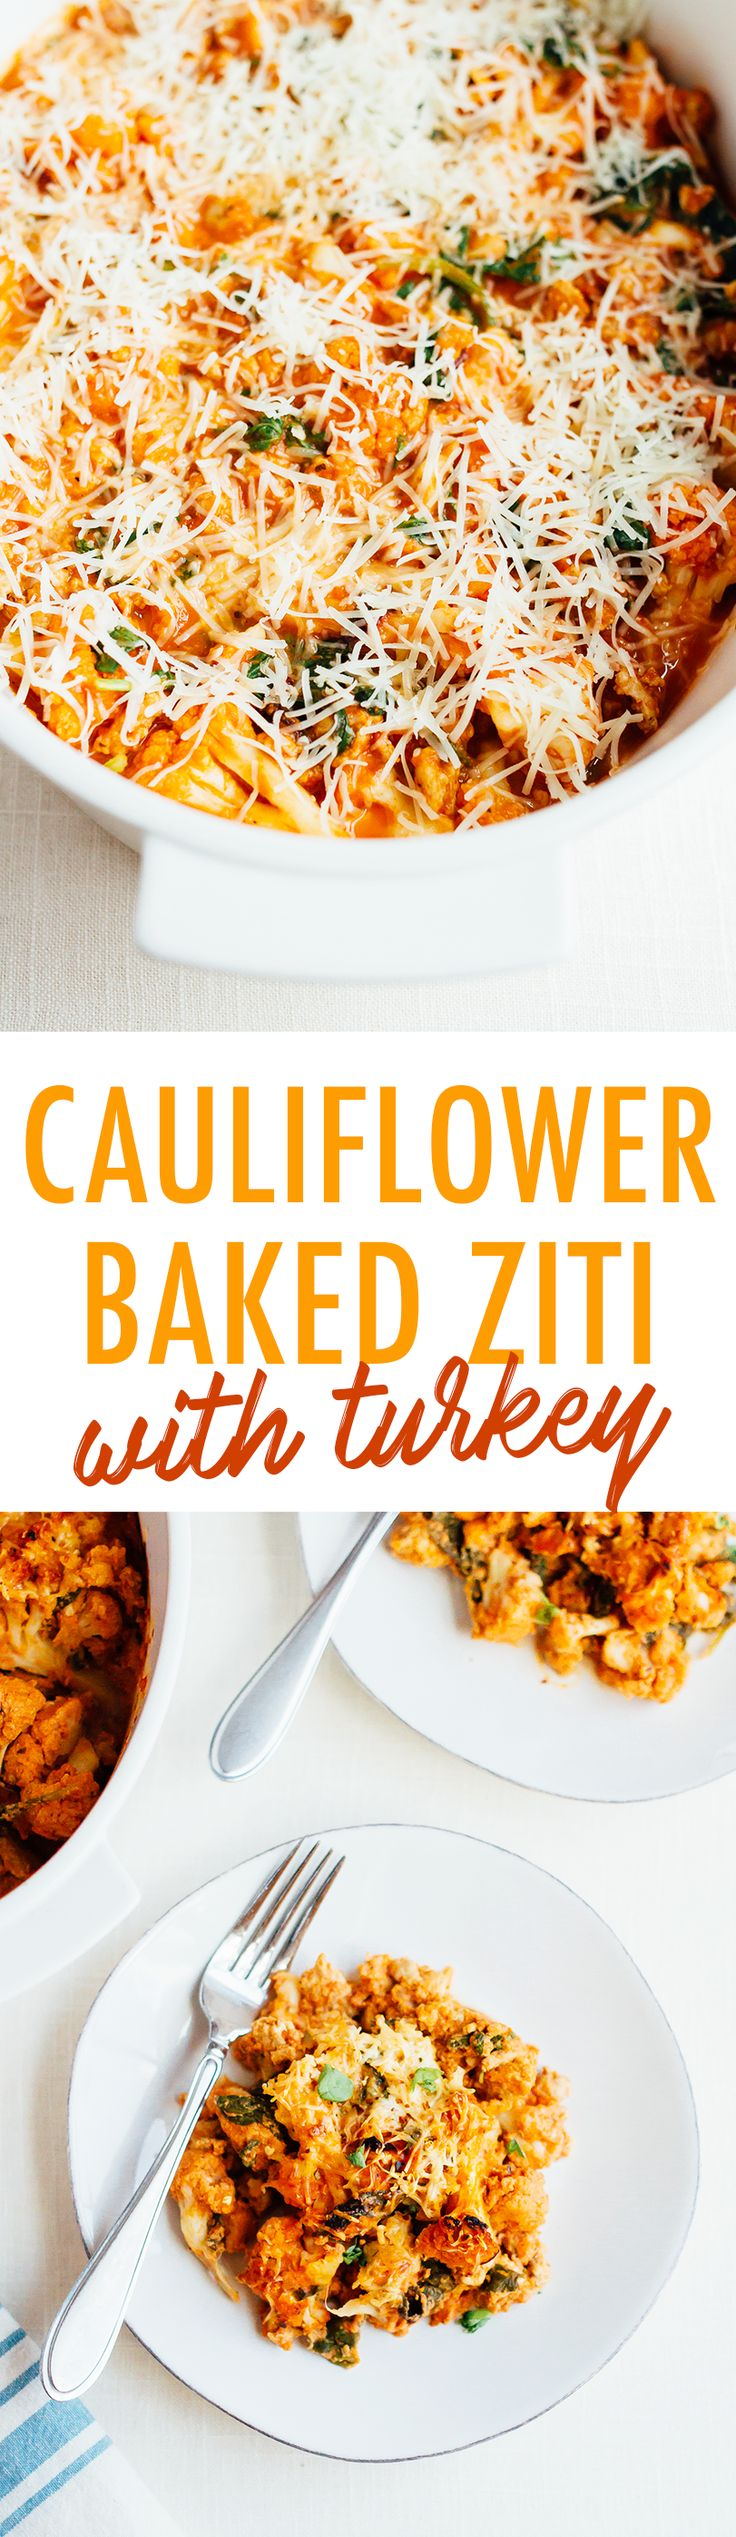 This turkey cauliflower baked ziti uses cooked cauliflower instead of pasta noodles so it's low-carb and gluten-free while still being cheesy and delicious. Recipe is from Megan Gilmore's cookbook, No Excuses Detox.